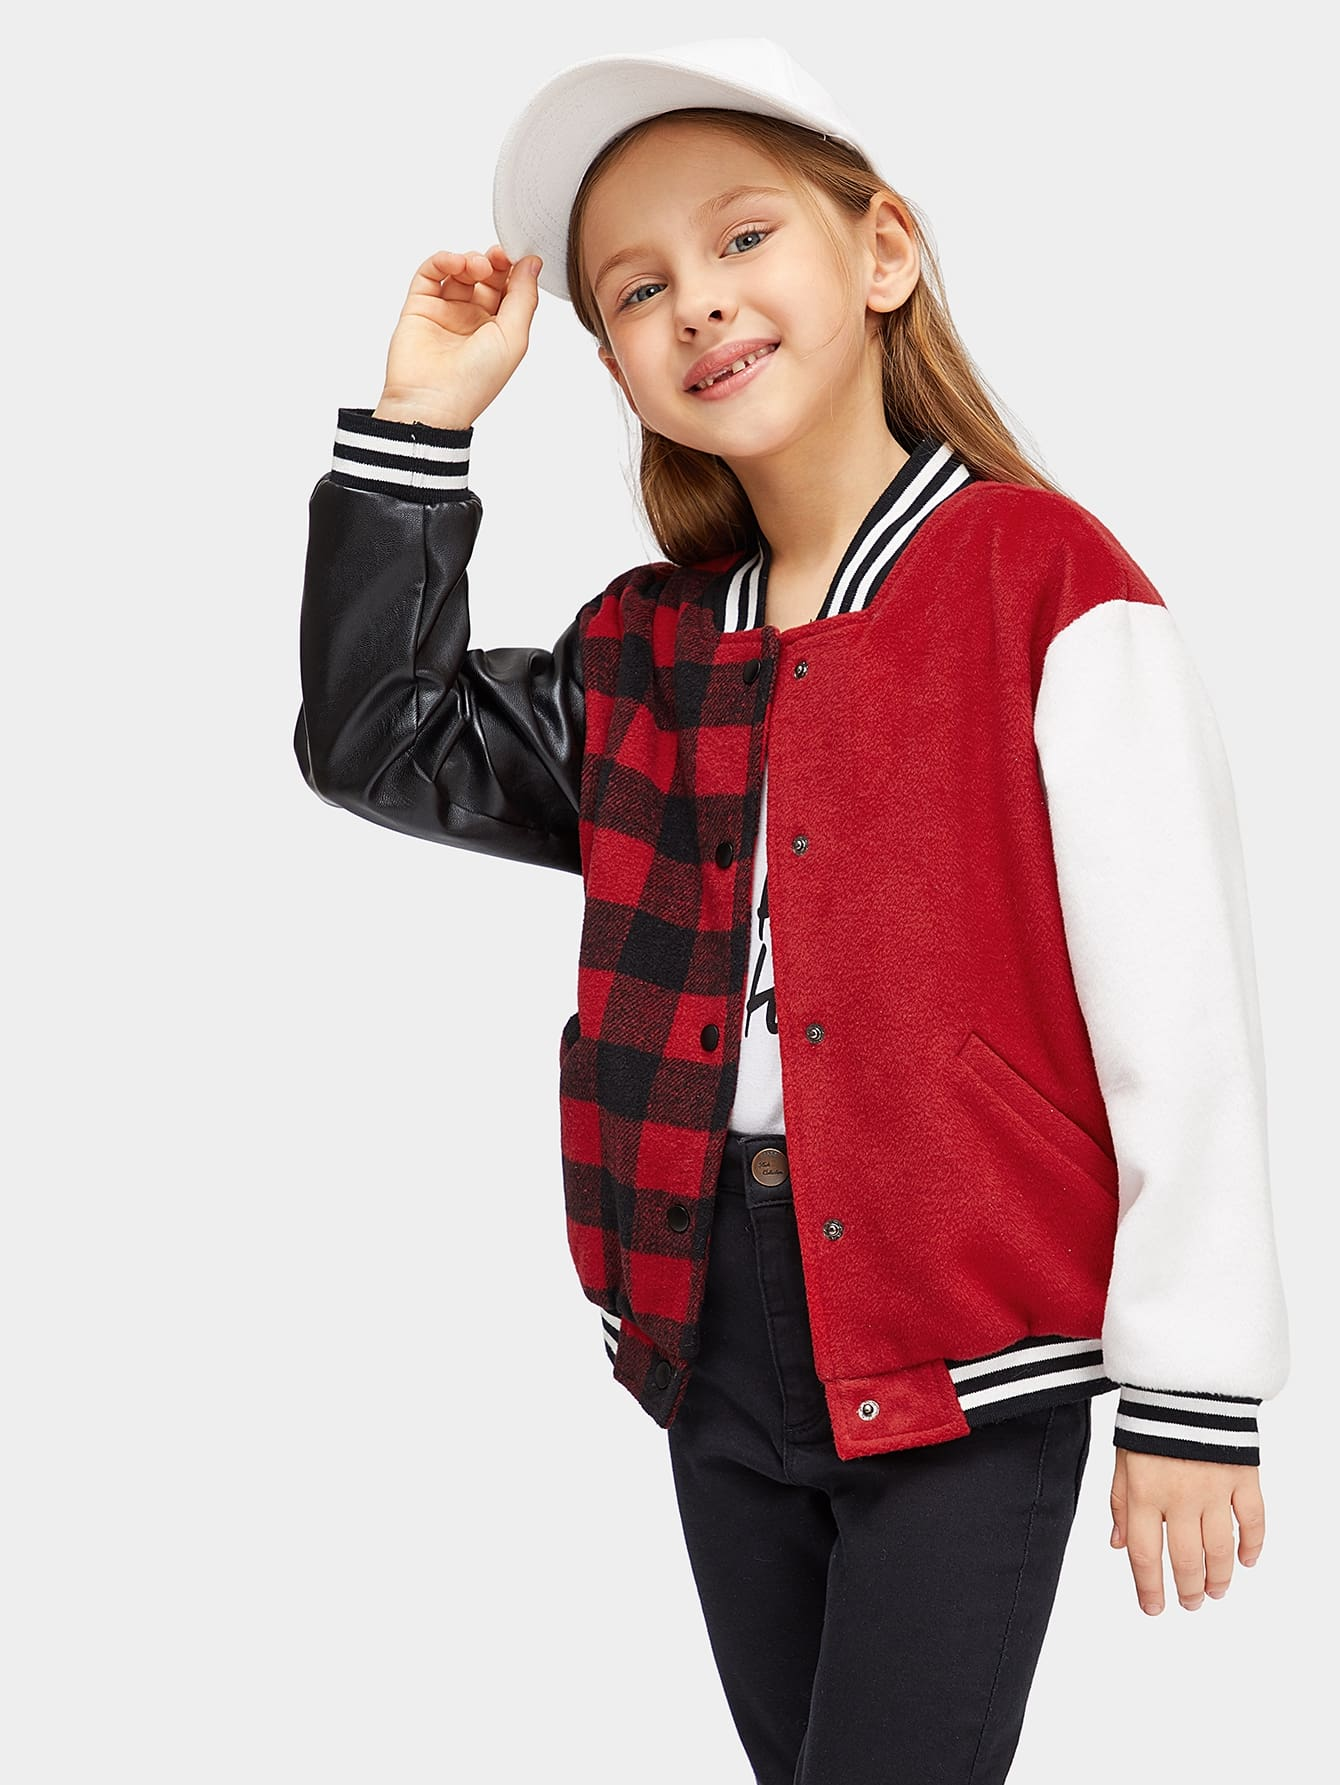 Girls Color Block Mixed Media Baseball Jacket Girls Color Block Mixed Media Baseball Jacket